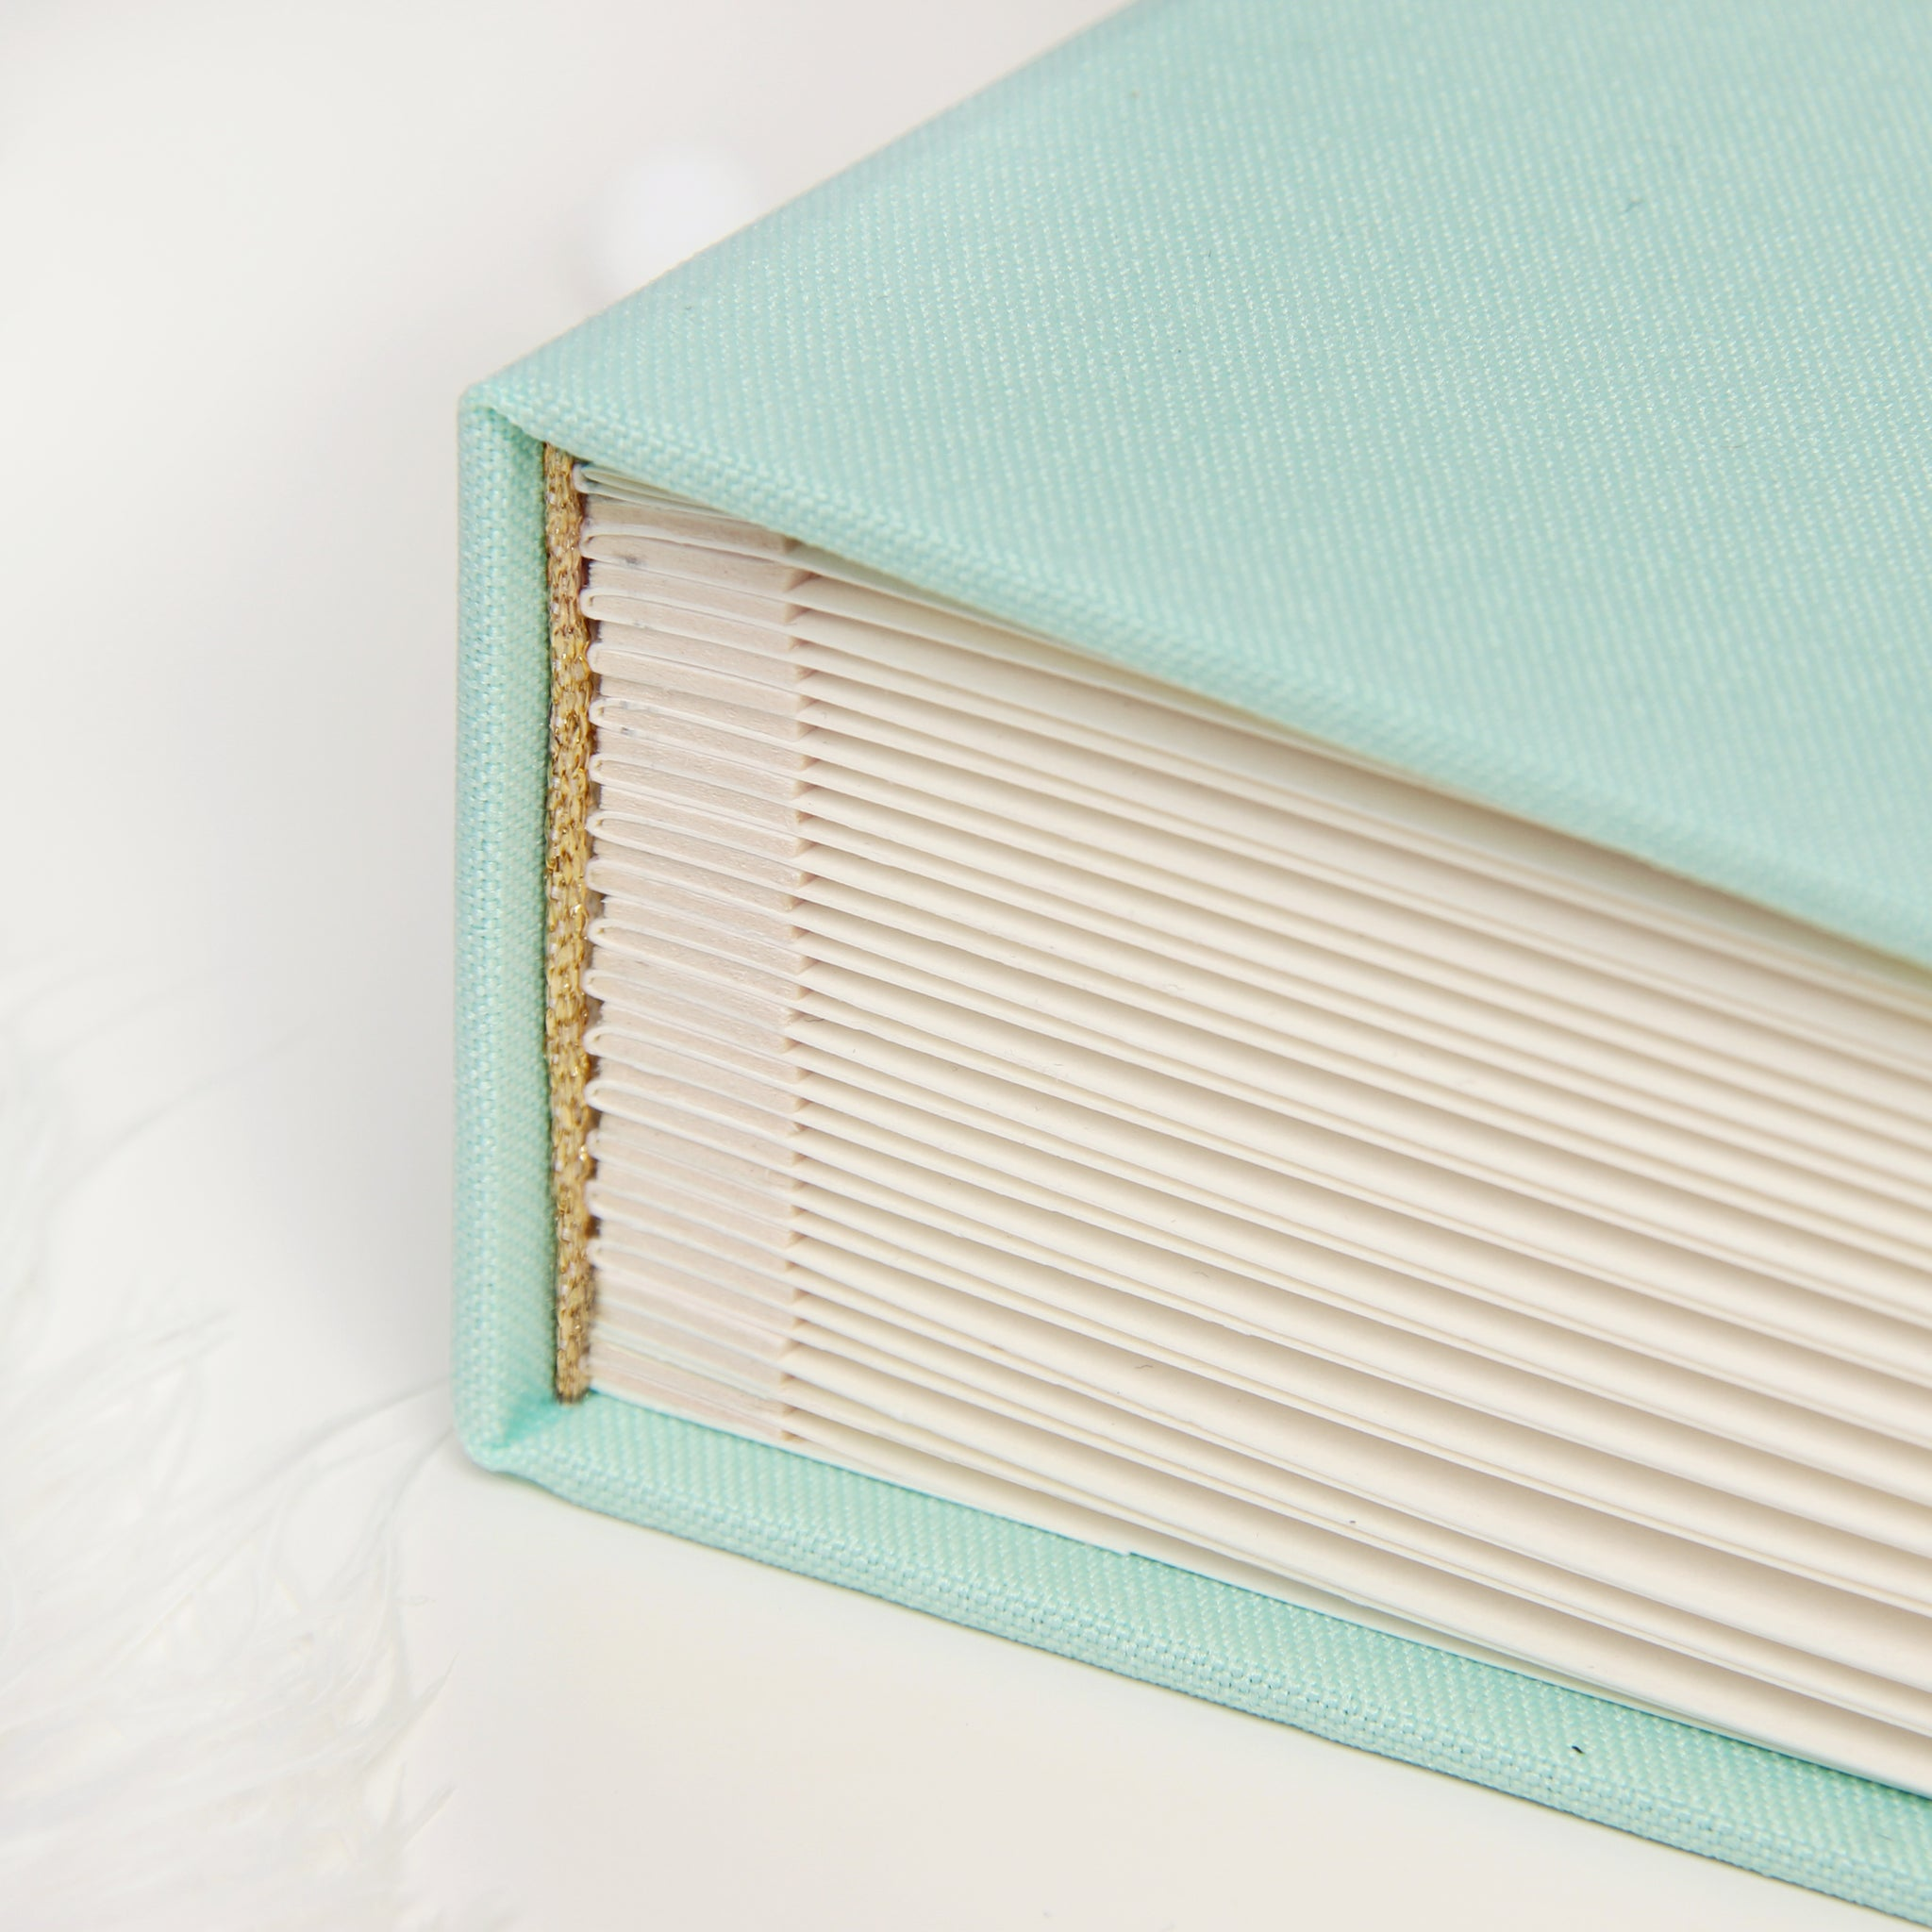 Album Little Princess , Baby album, Mint instax picture album, Swan Princess book, Kids Album - by Liumy - Liumy